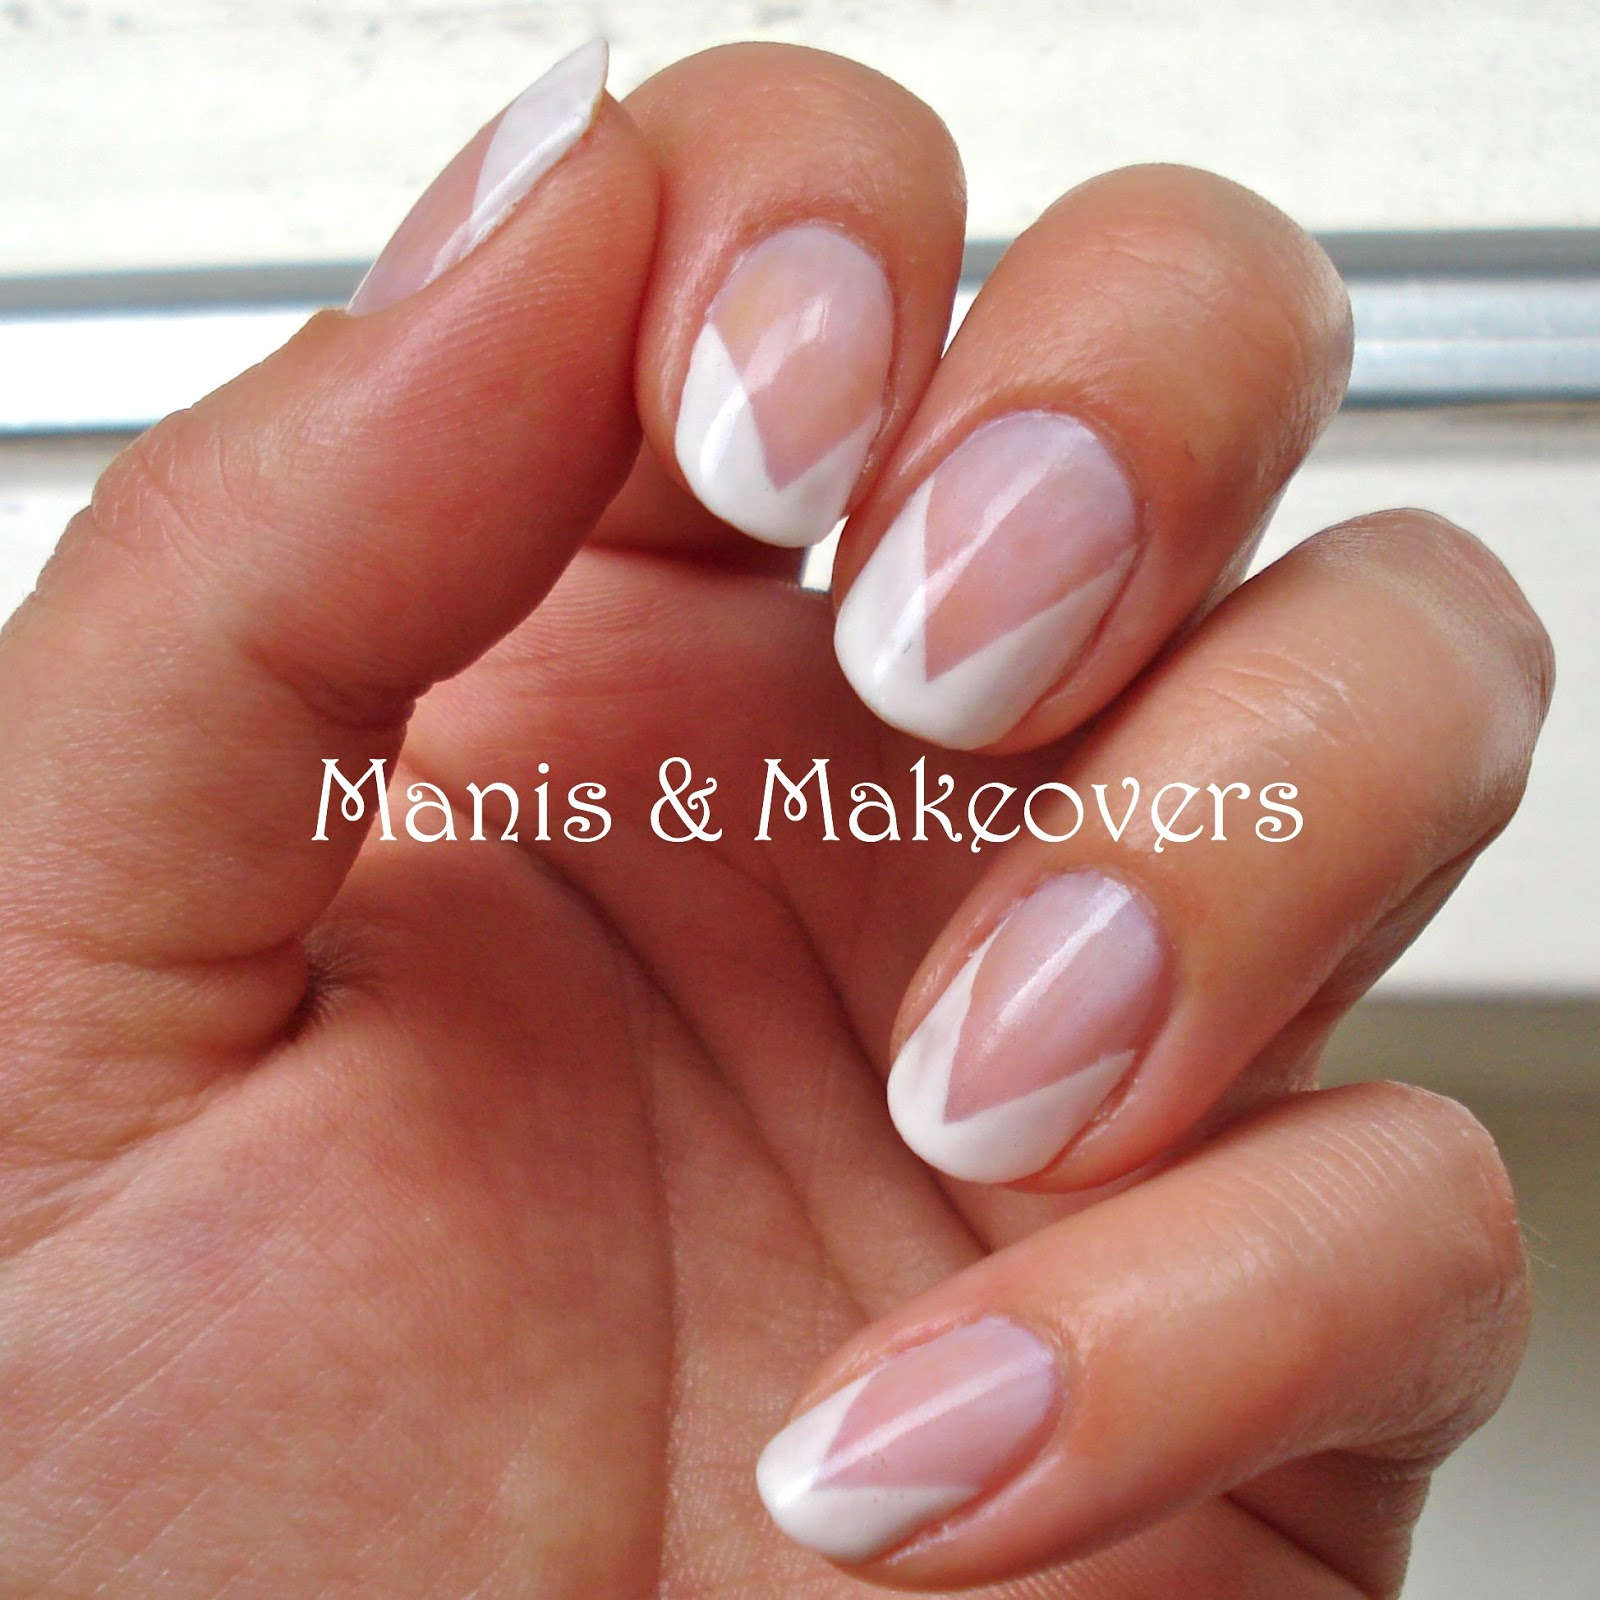 Manis & Makeovers: Another Nail Idea for a Job Interview